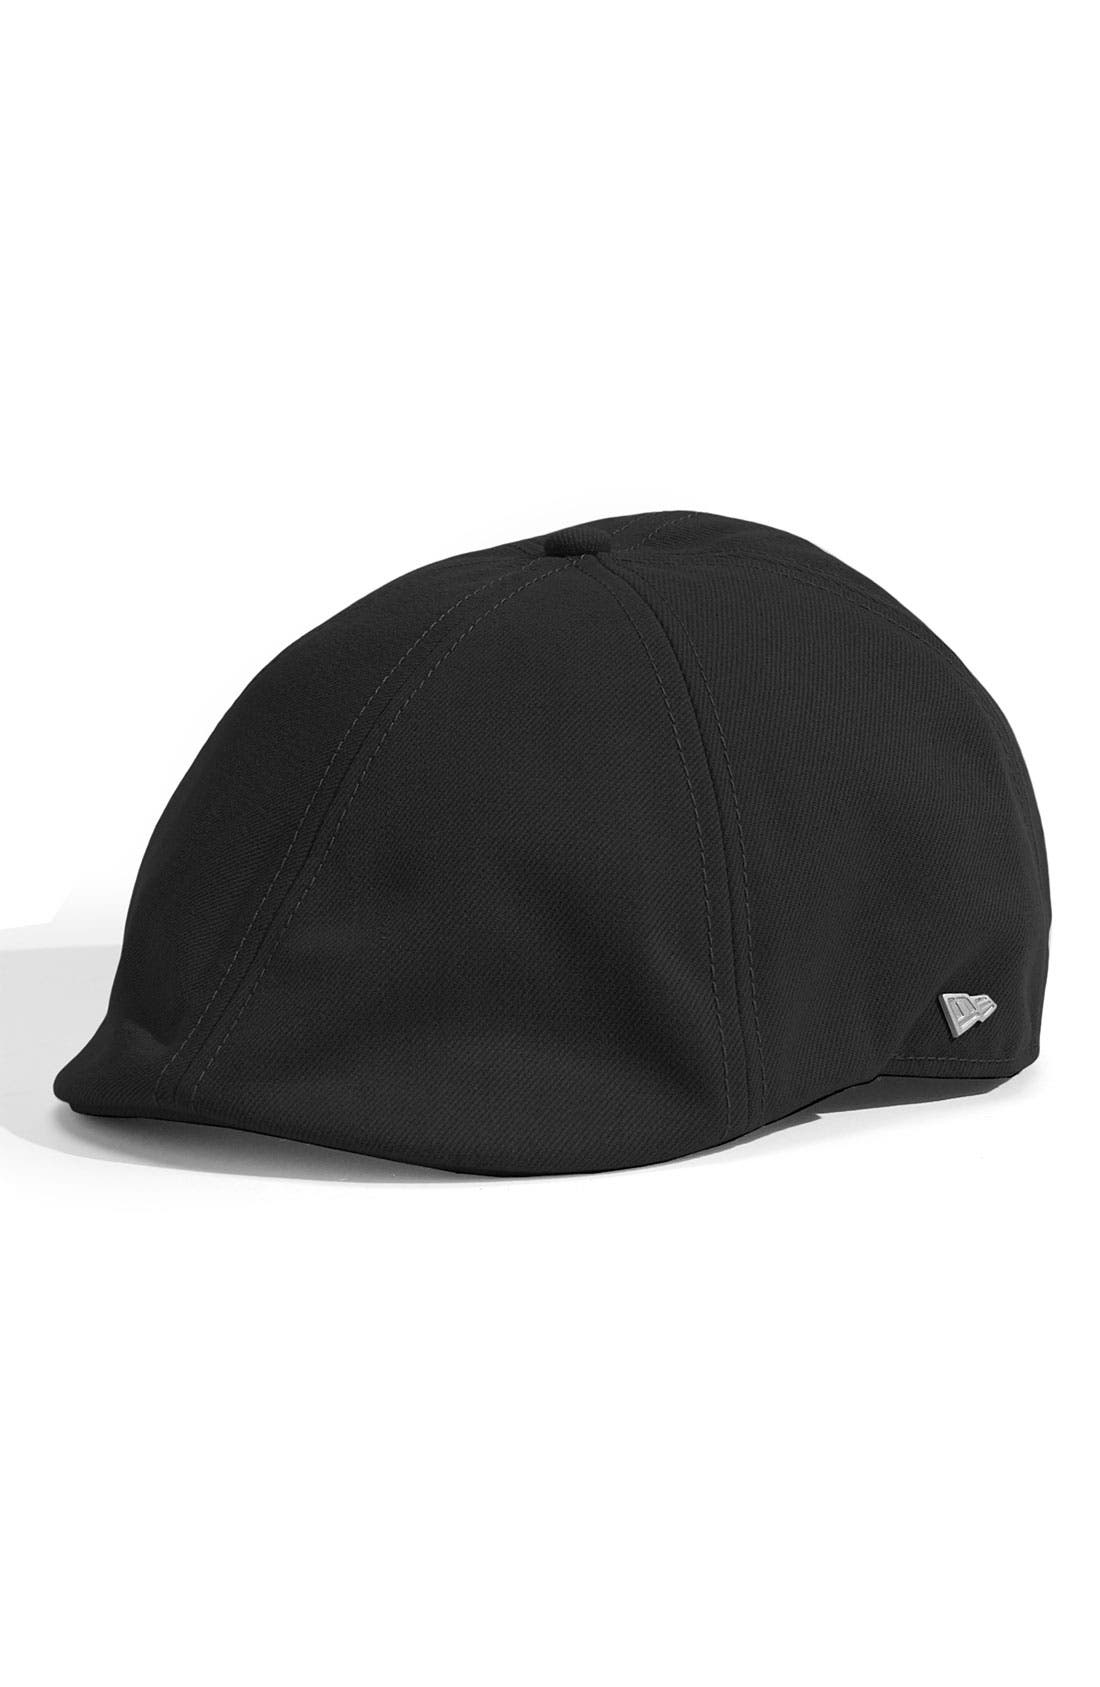 Alternate Image 1 Selected - New Era Cap 'Runty 2' Driving Cap